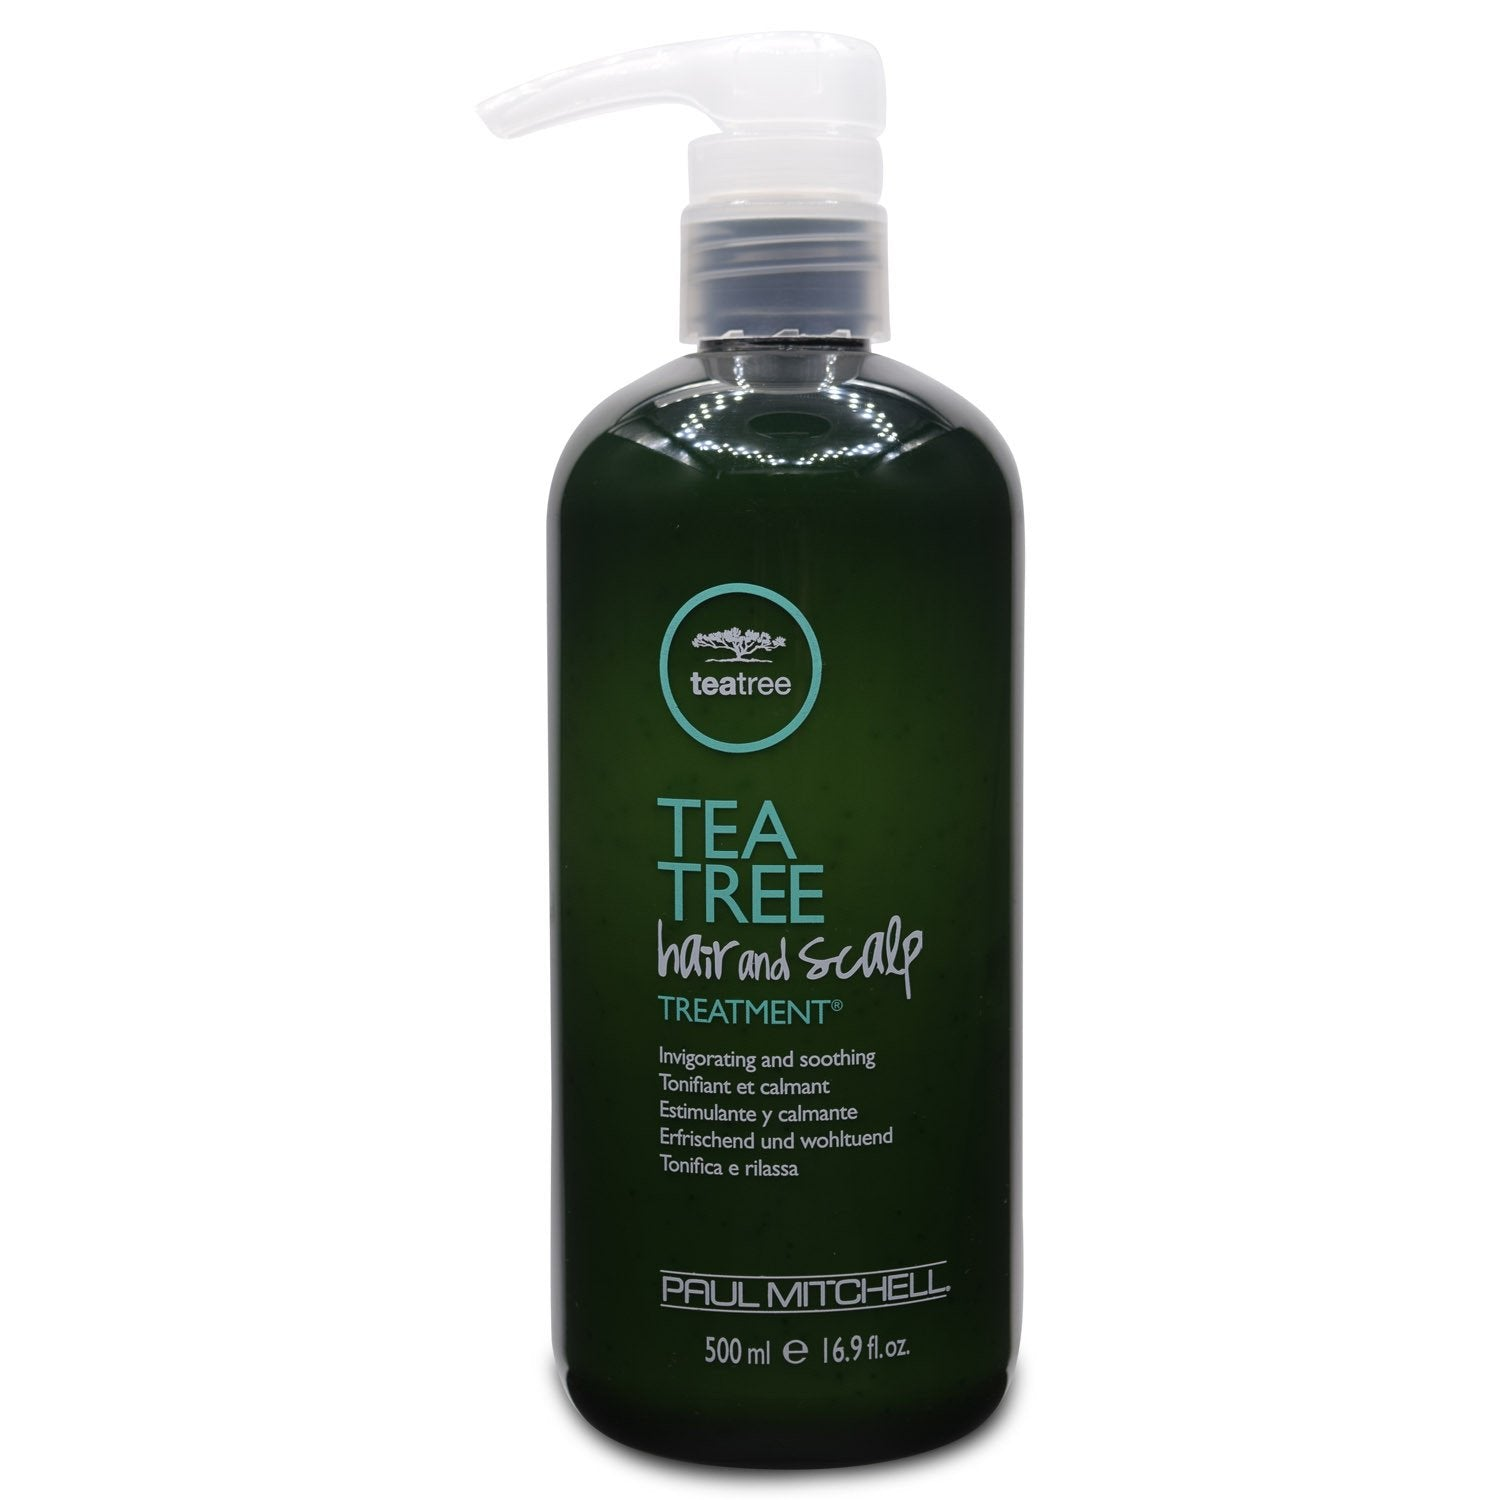 PAUL MITCHELL ~ TEA TREE ~ HAIR AND SCALP TREATMENT ~ 16.9 OZ